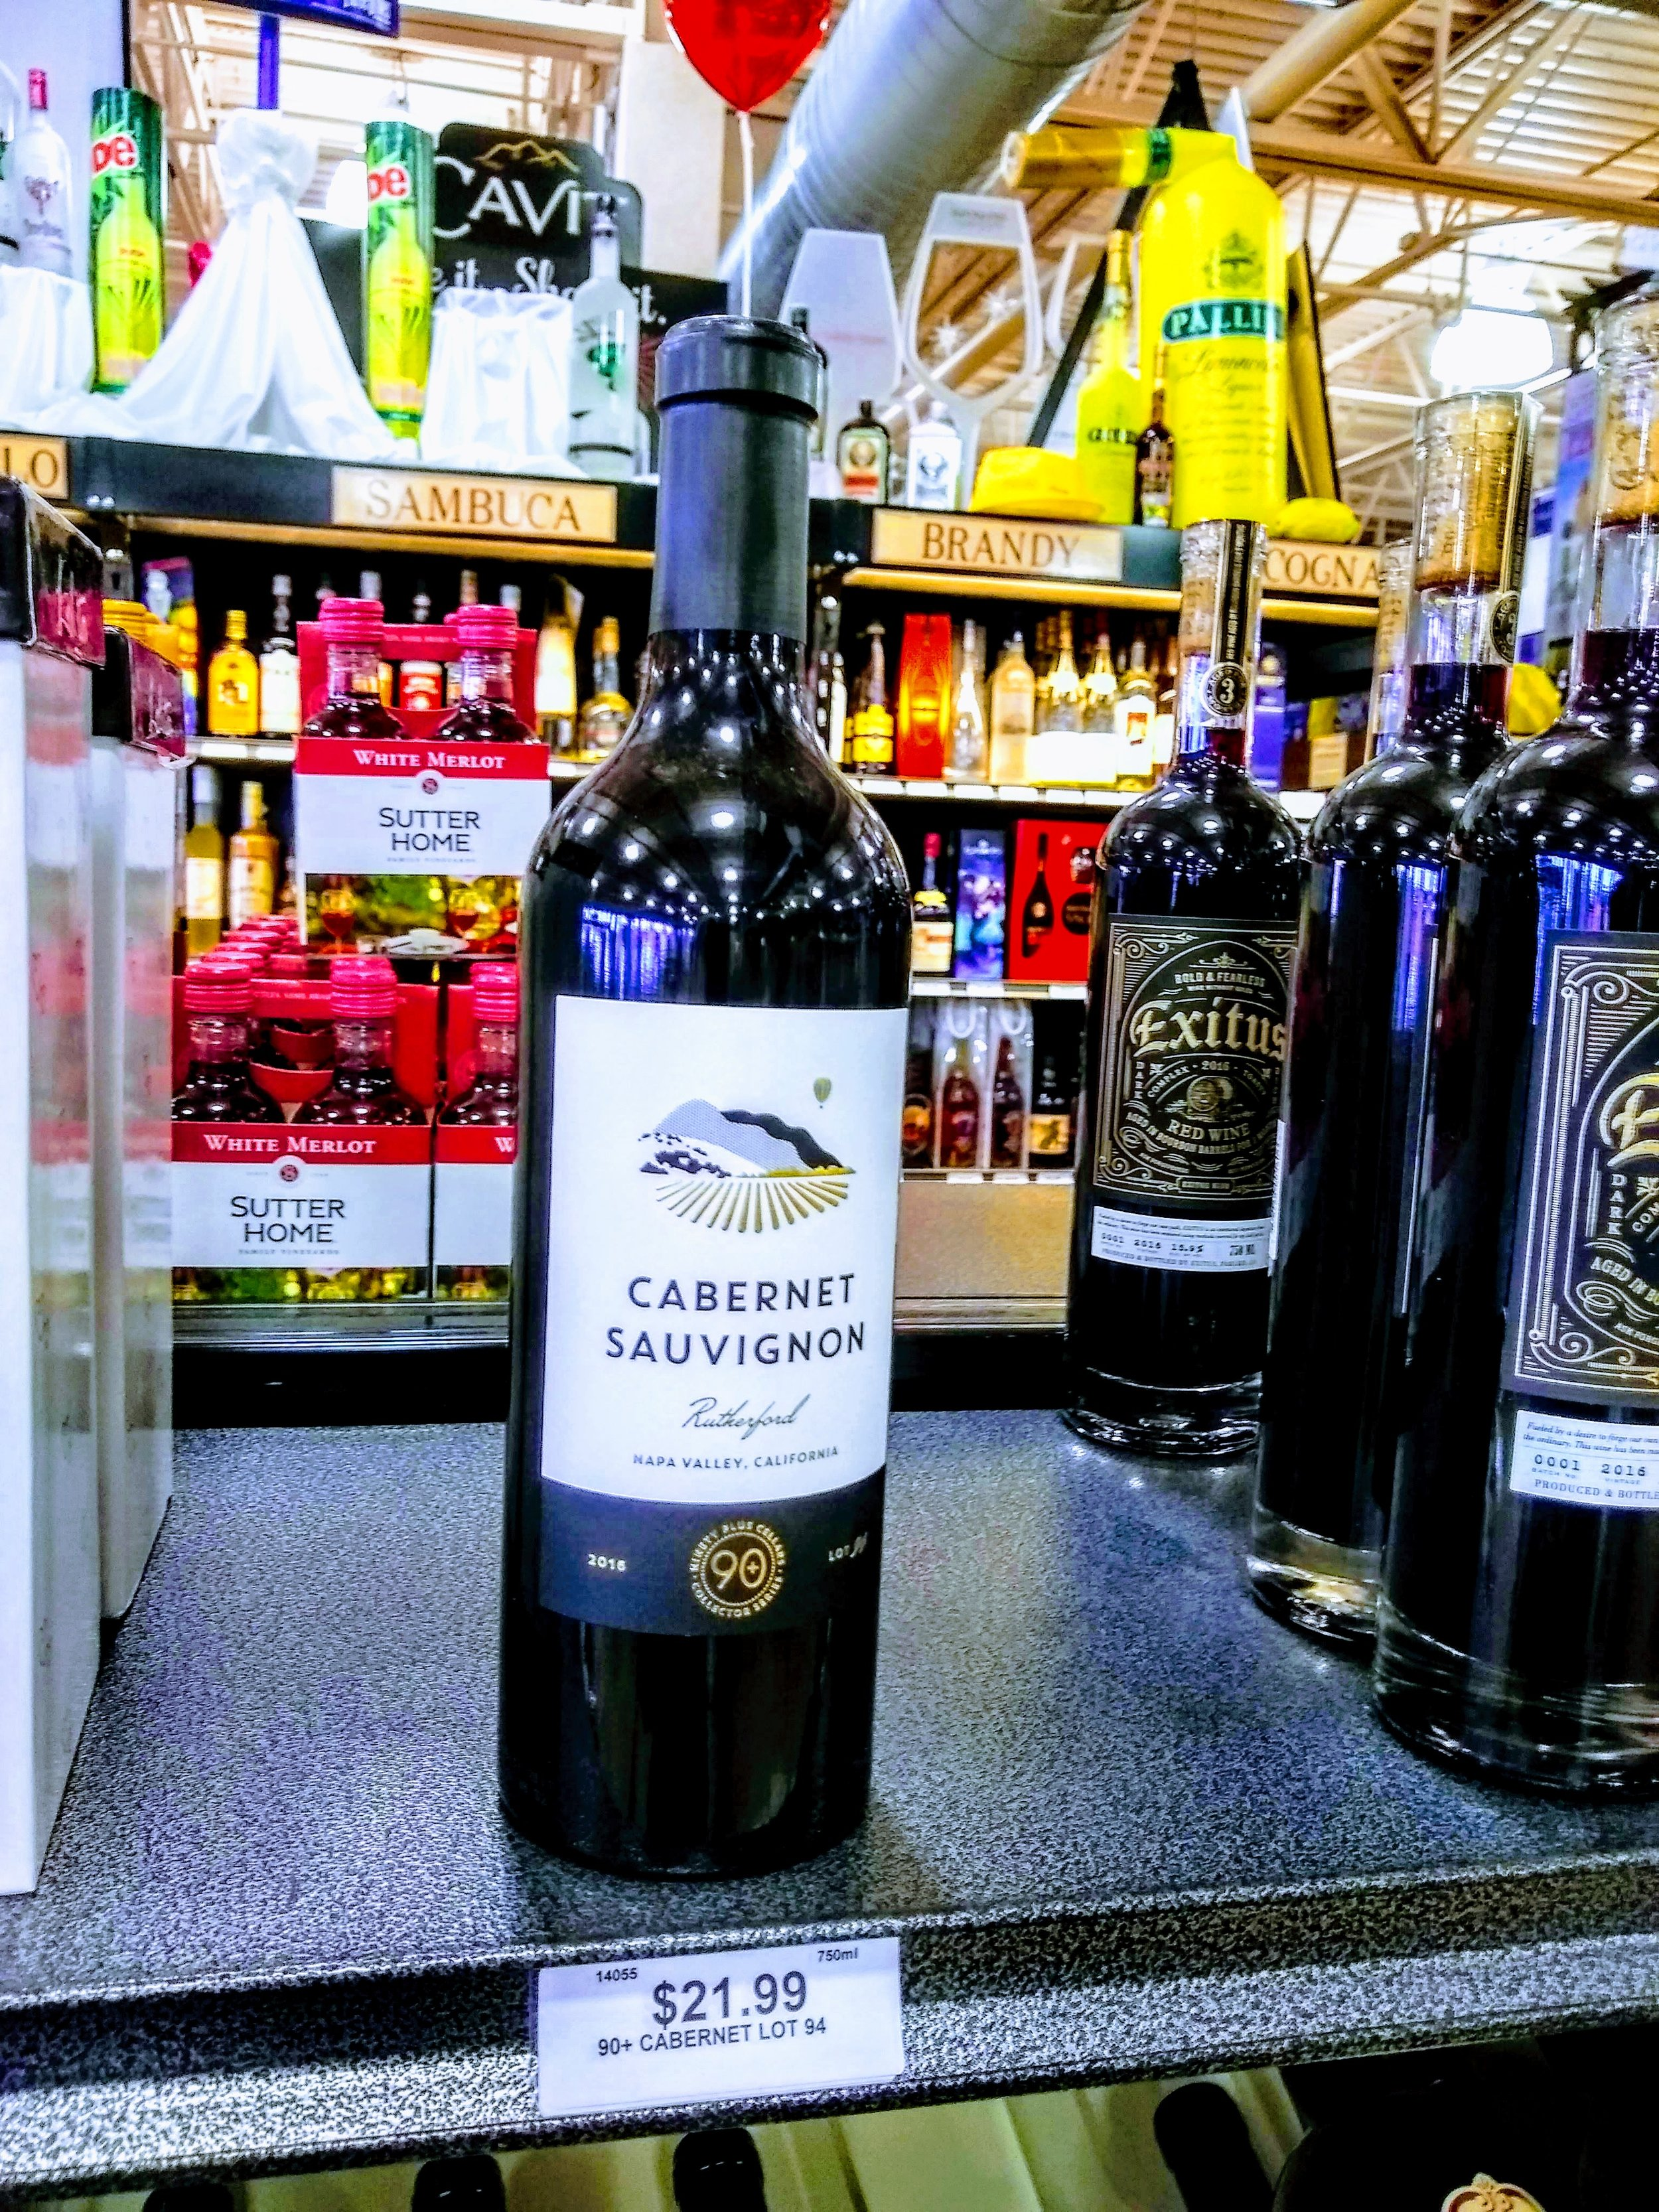 90+ Ninety Plus Cellars Cabernet Sauvignon 2016, lot 94 - The last bottle on the shelf this day at Wine Academy, Lakewood NJ. Recommendation by The Ghost of Steve.